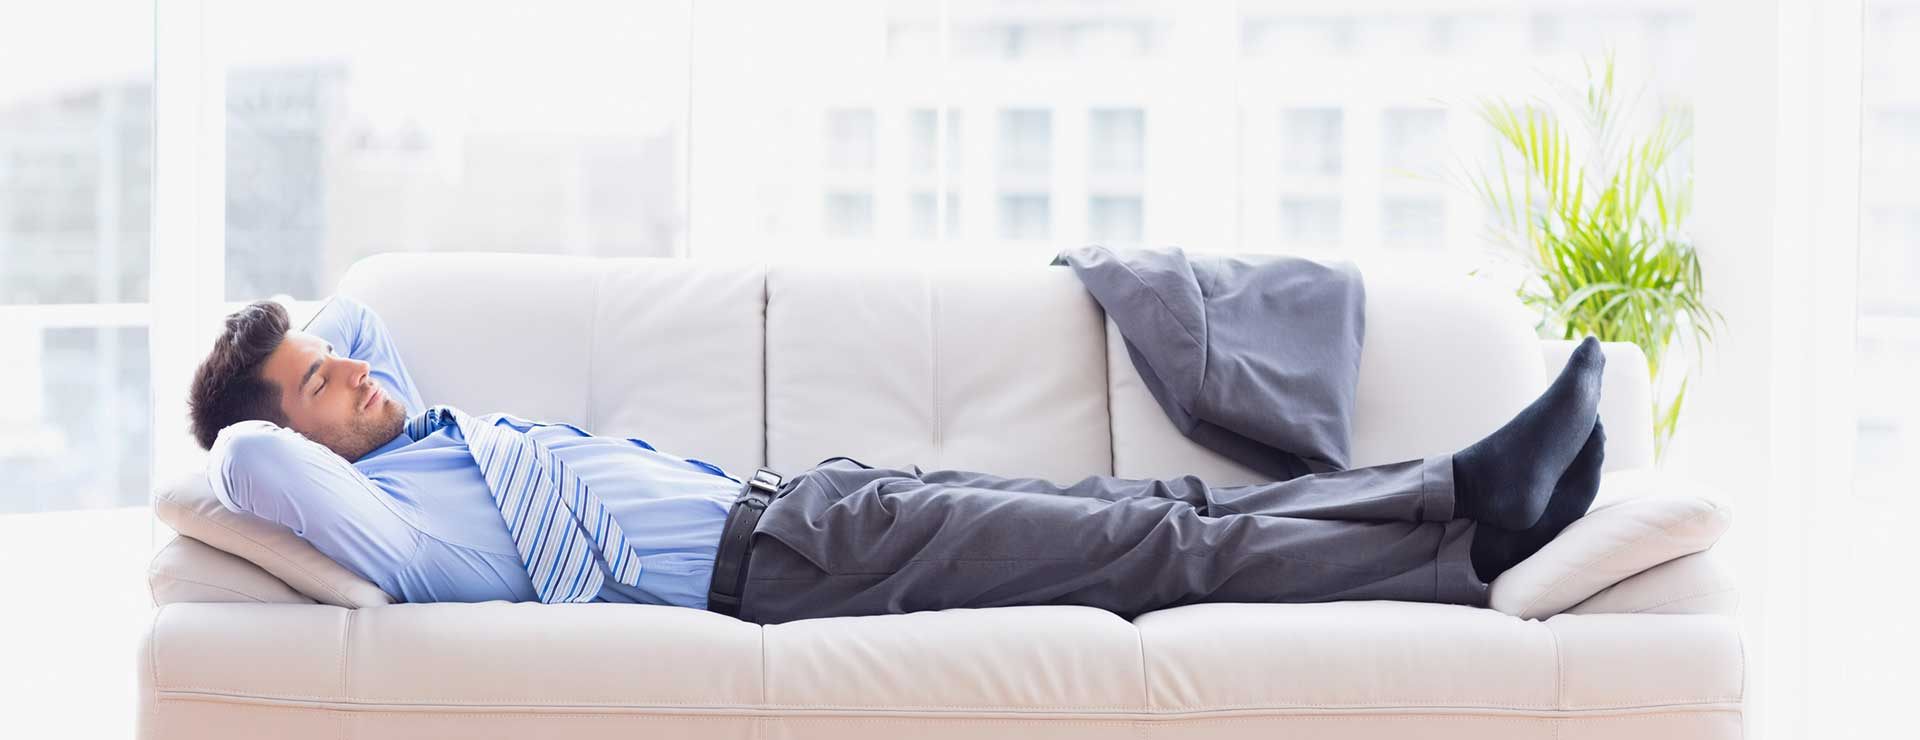 Tired business man sleeps on sofa in work clothes